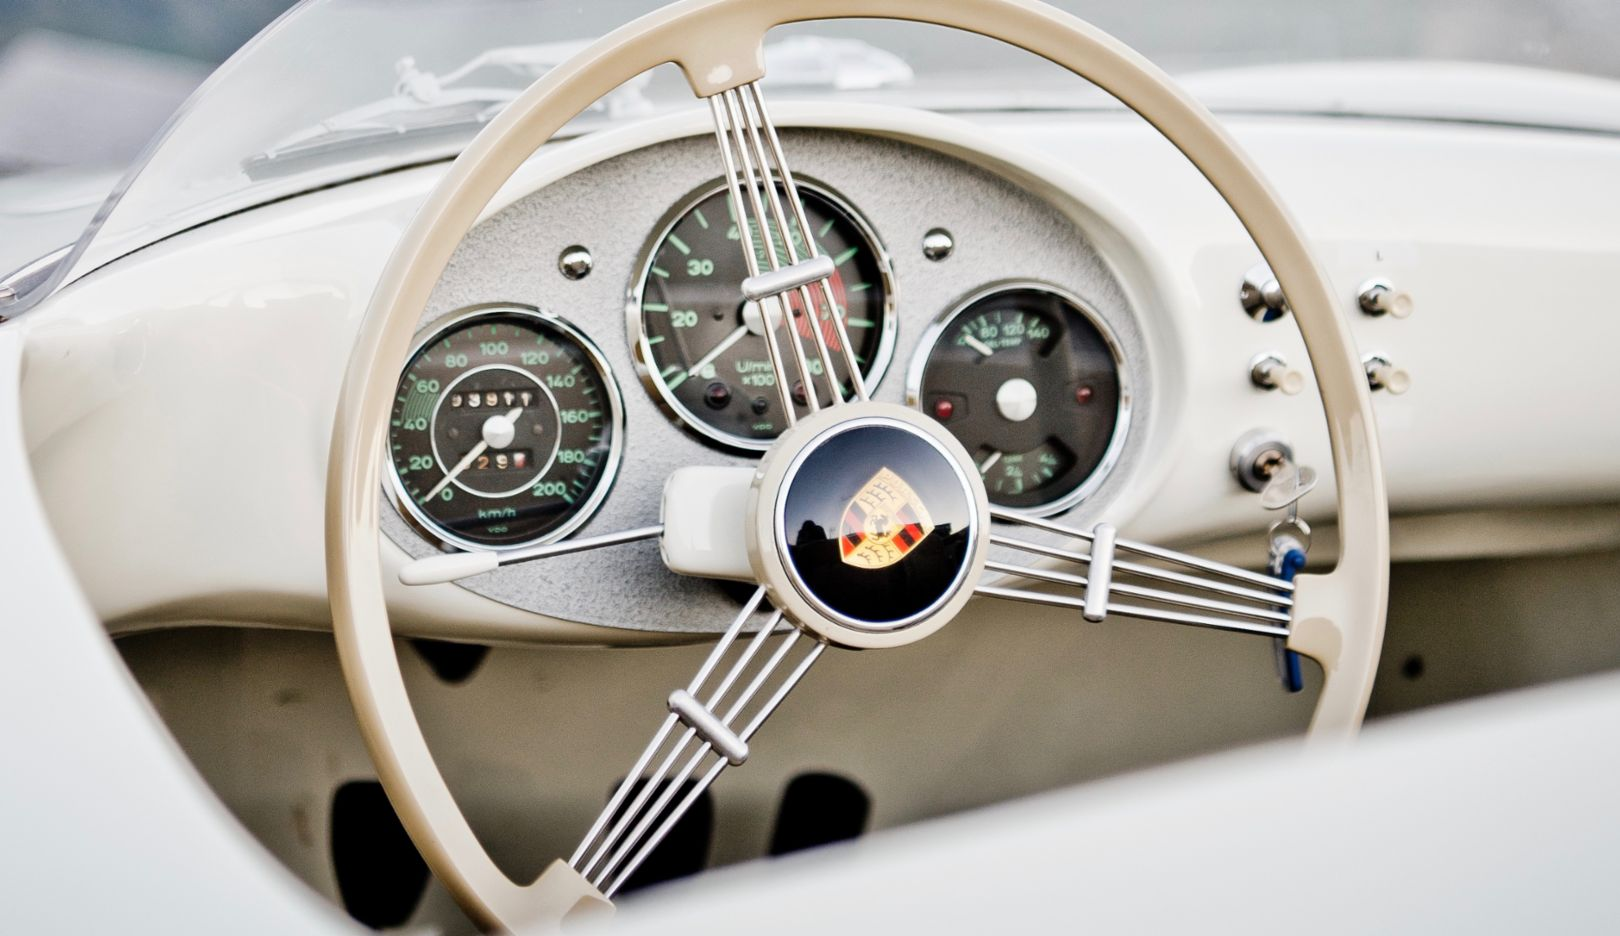 The narrow ivory-colored rim of the steering wheel and the triple spring spokes offer a clear view of the three instruments, with the rev counter at the center. Typical Porsche.